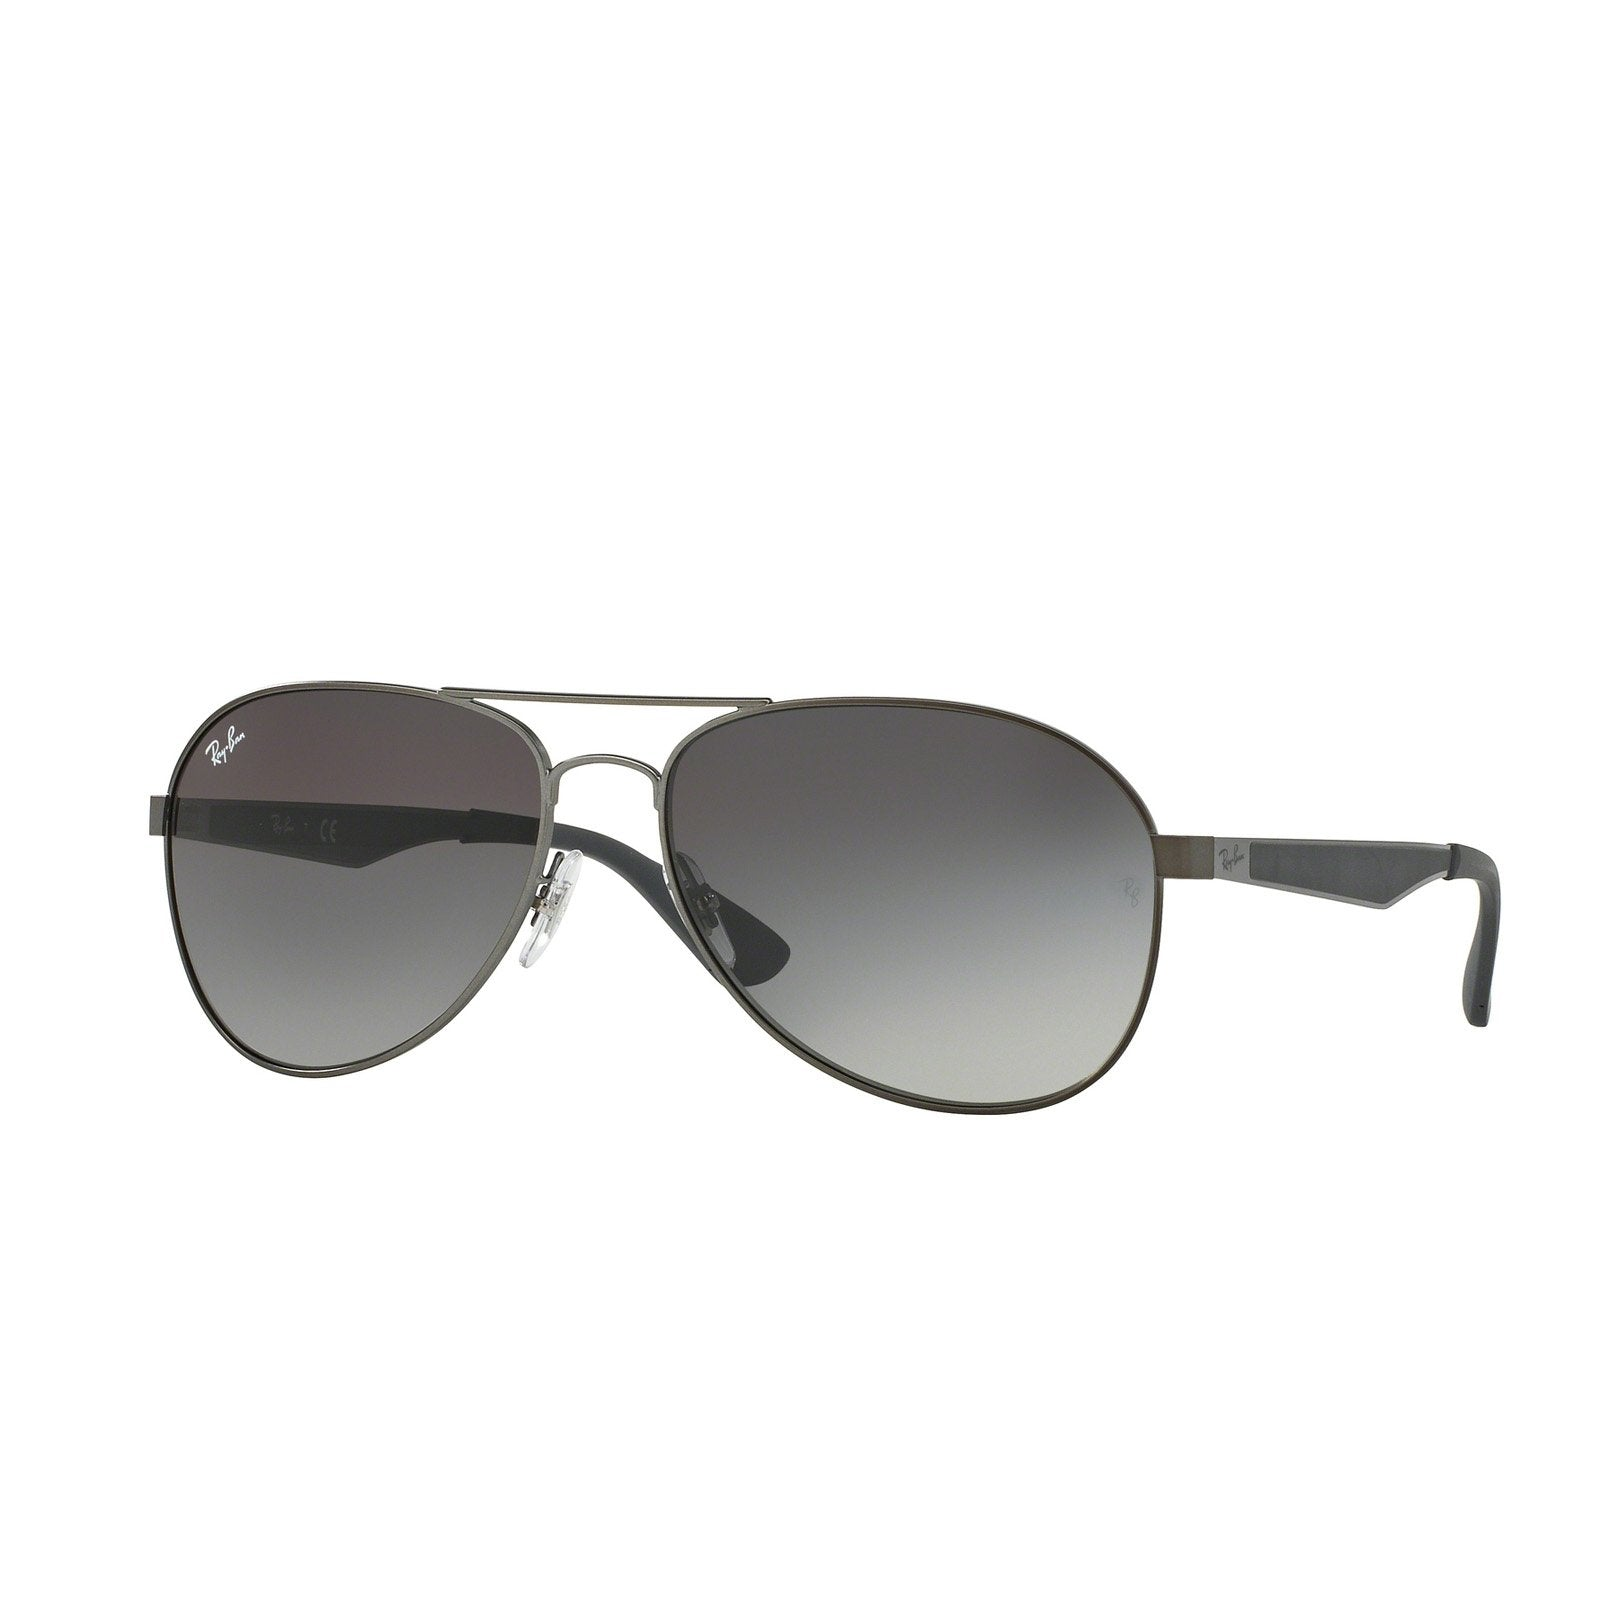 Ray-Ban RB3549 029/11 Sunglasses